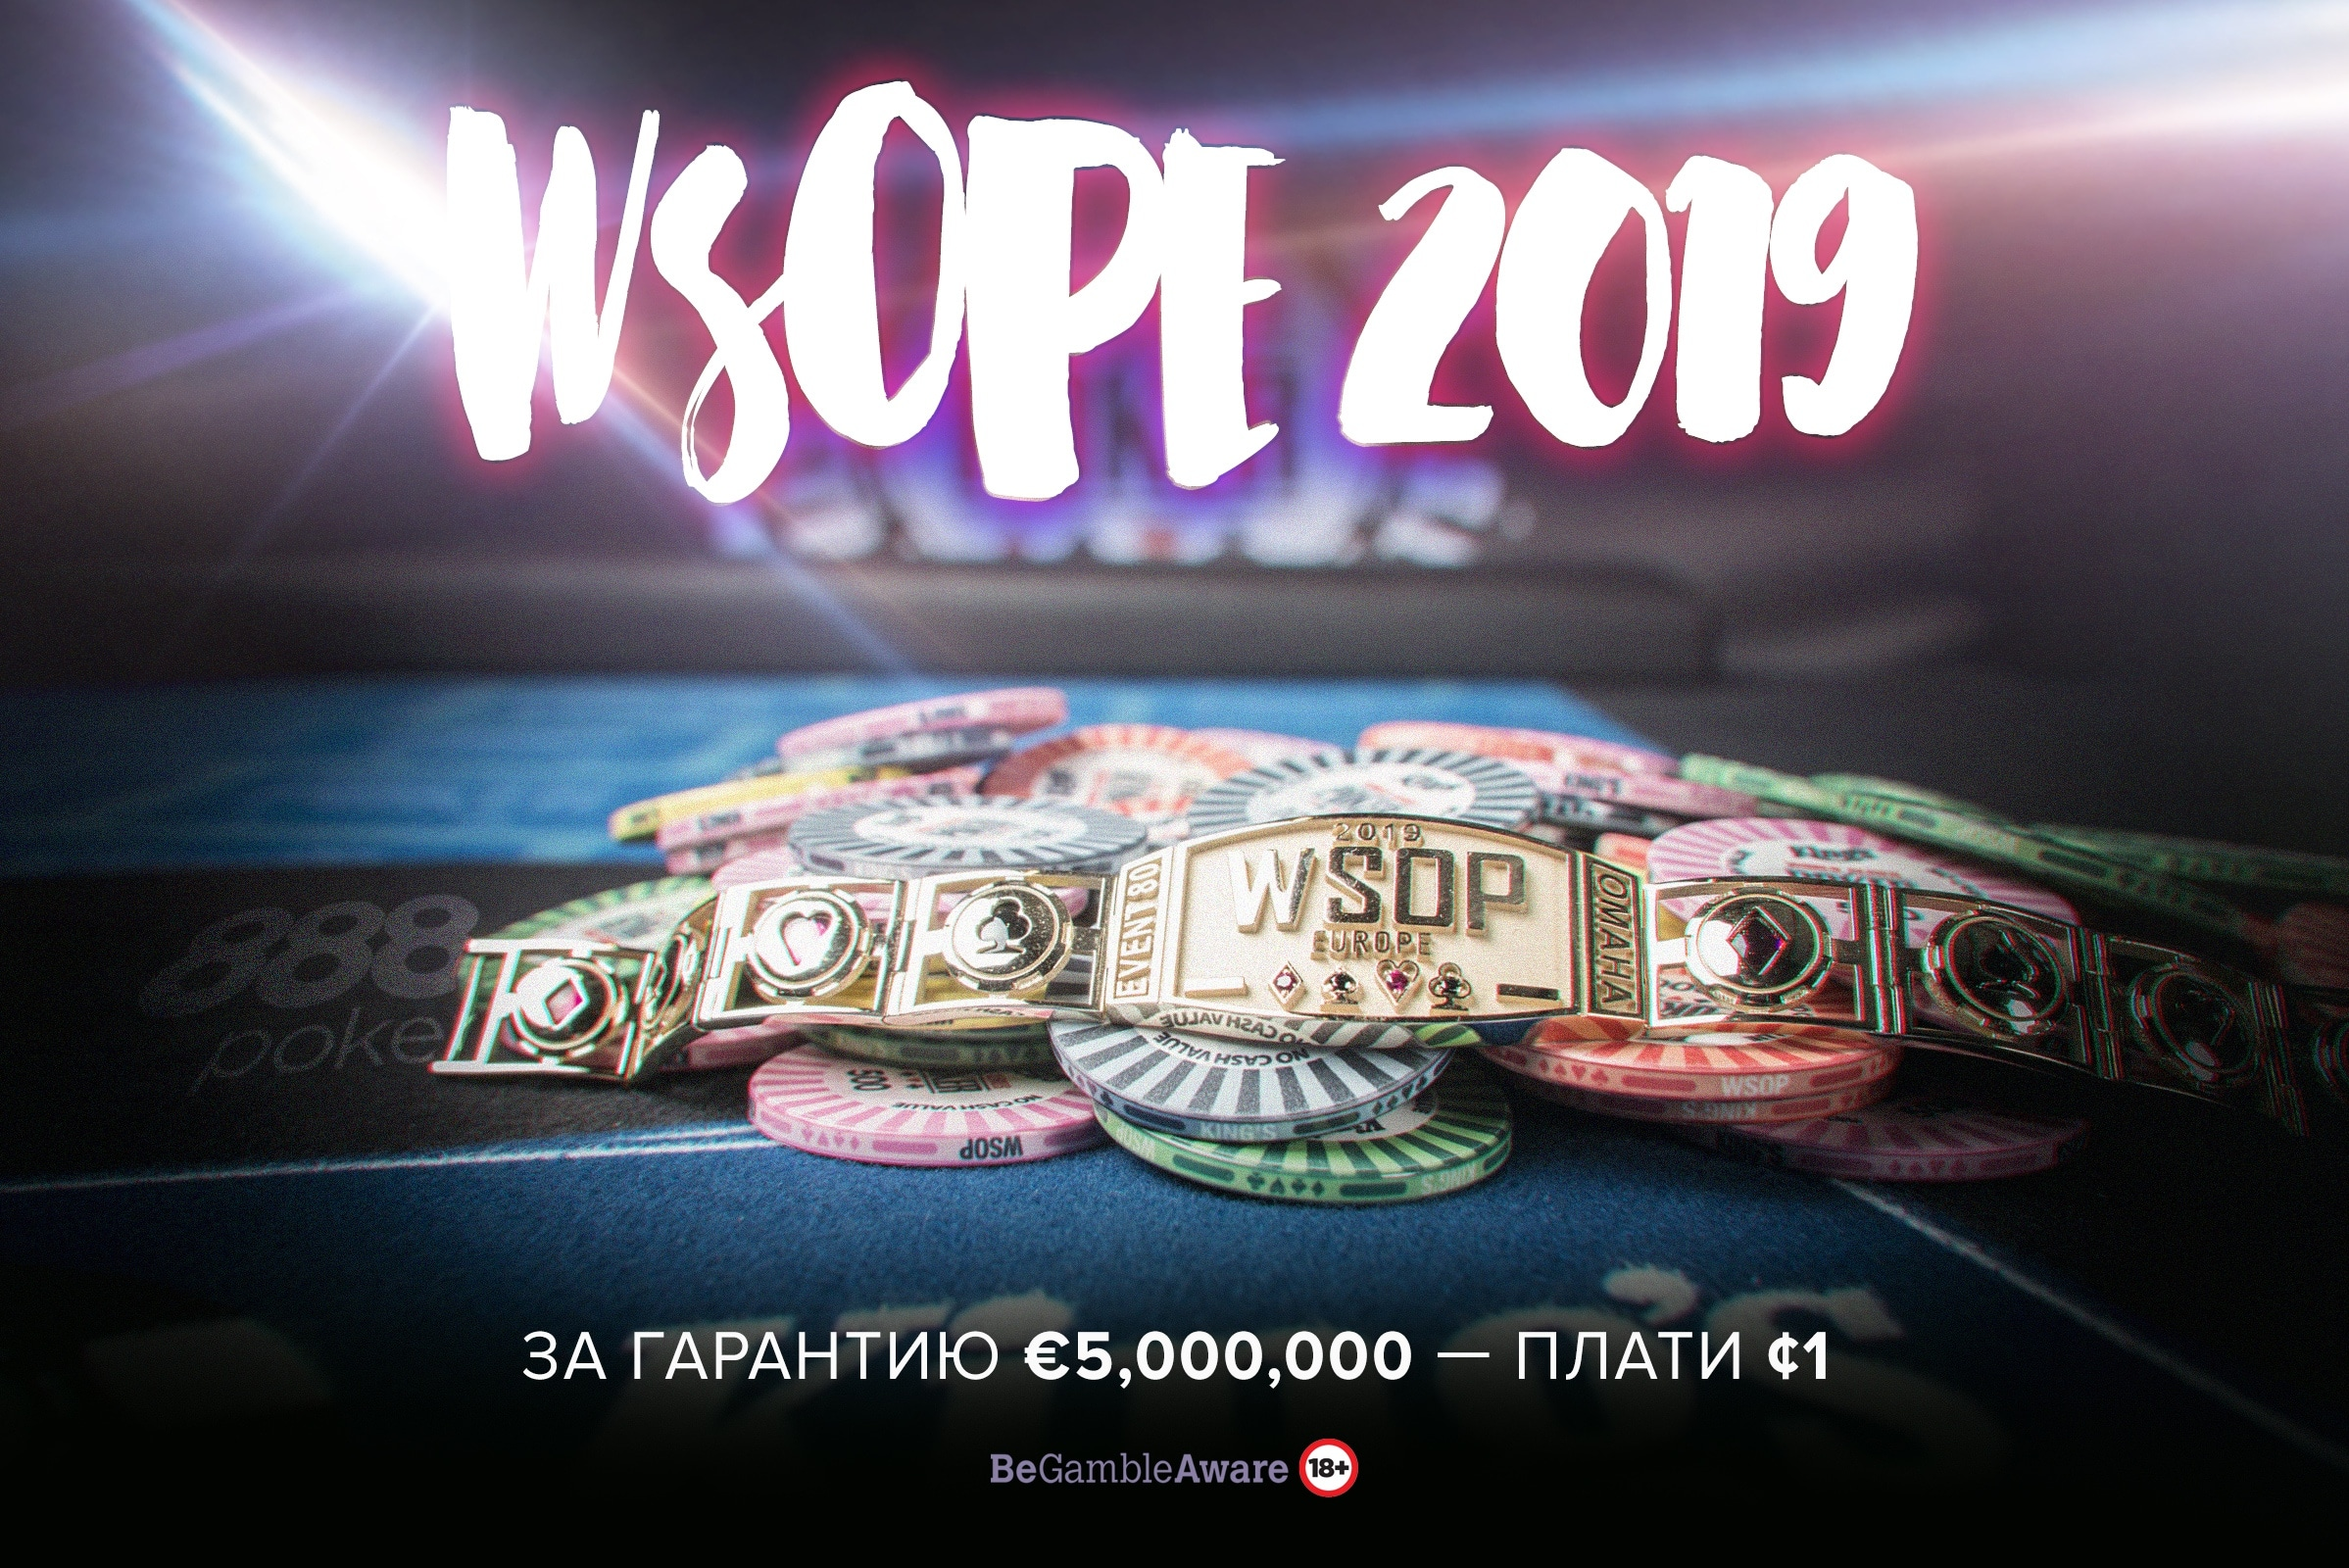 WSOP-E announcement